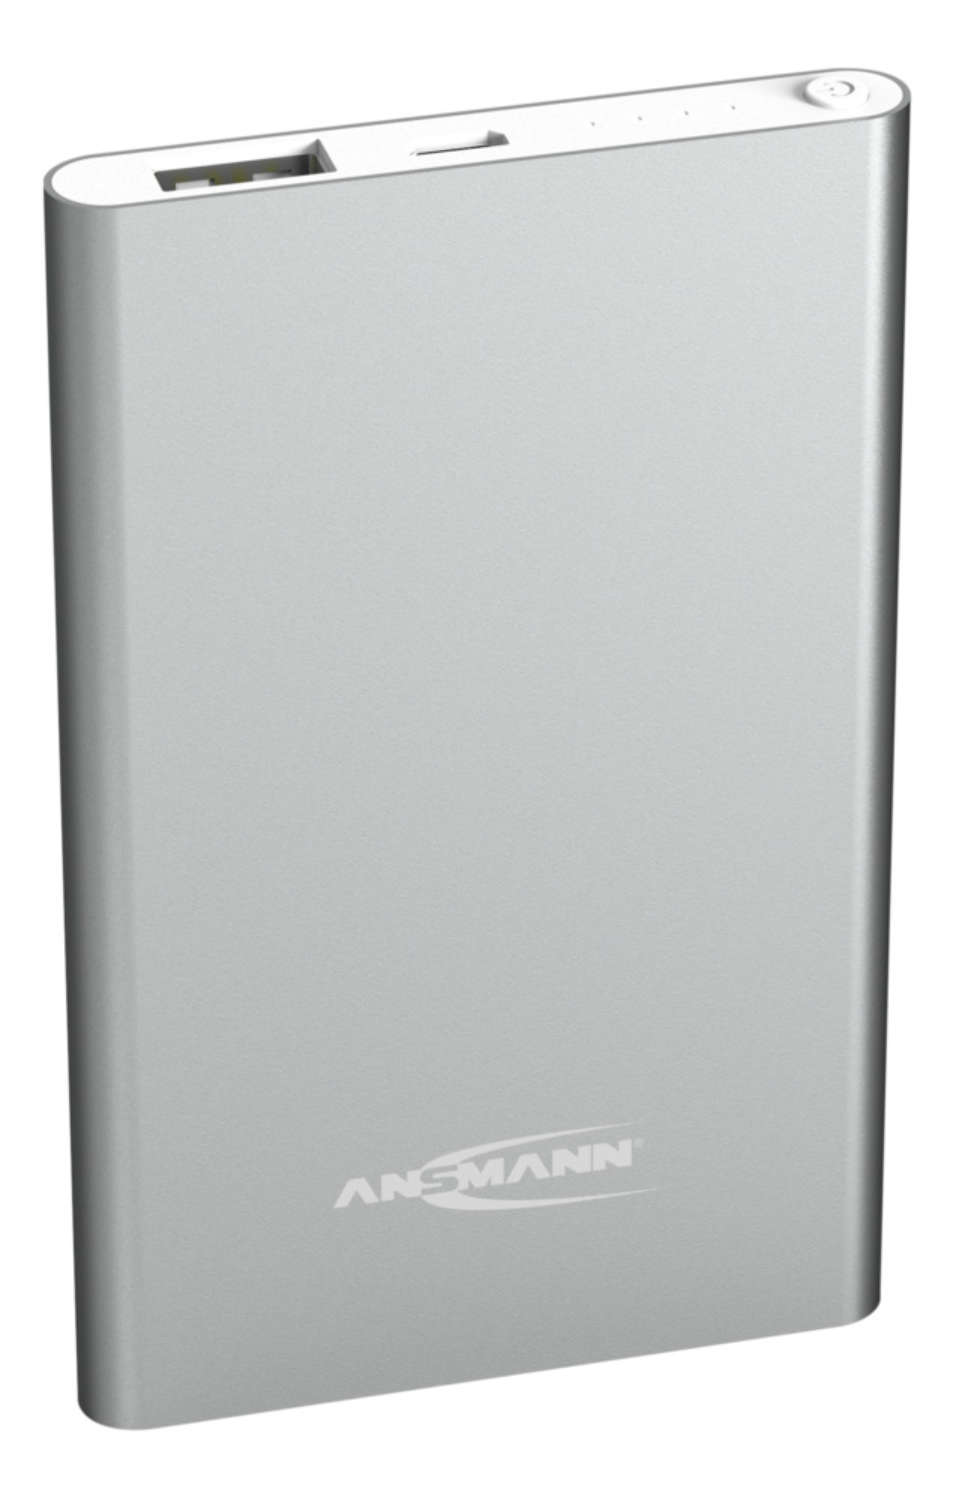 Powerbank 4 Ah, silver coloured